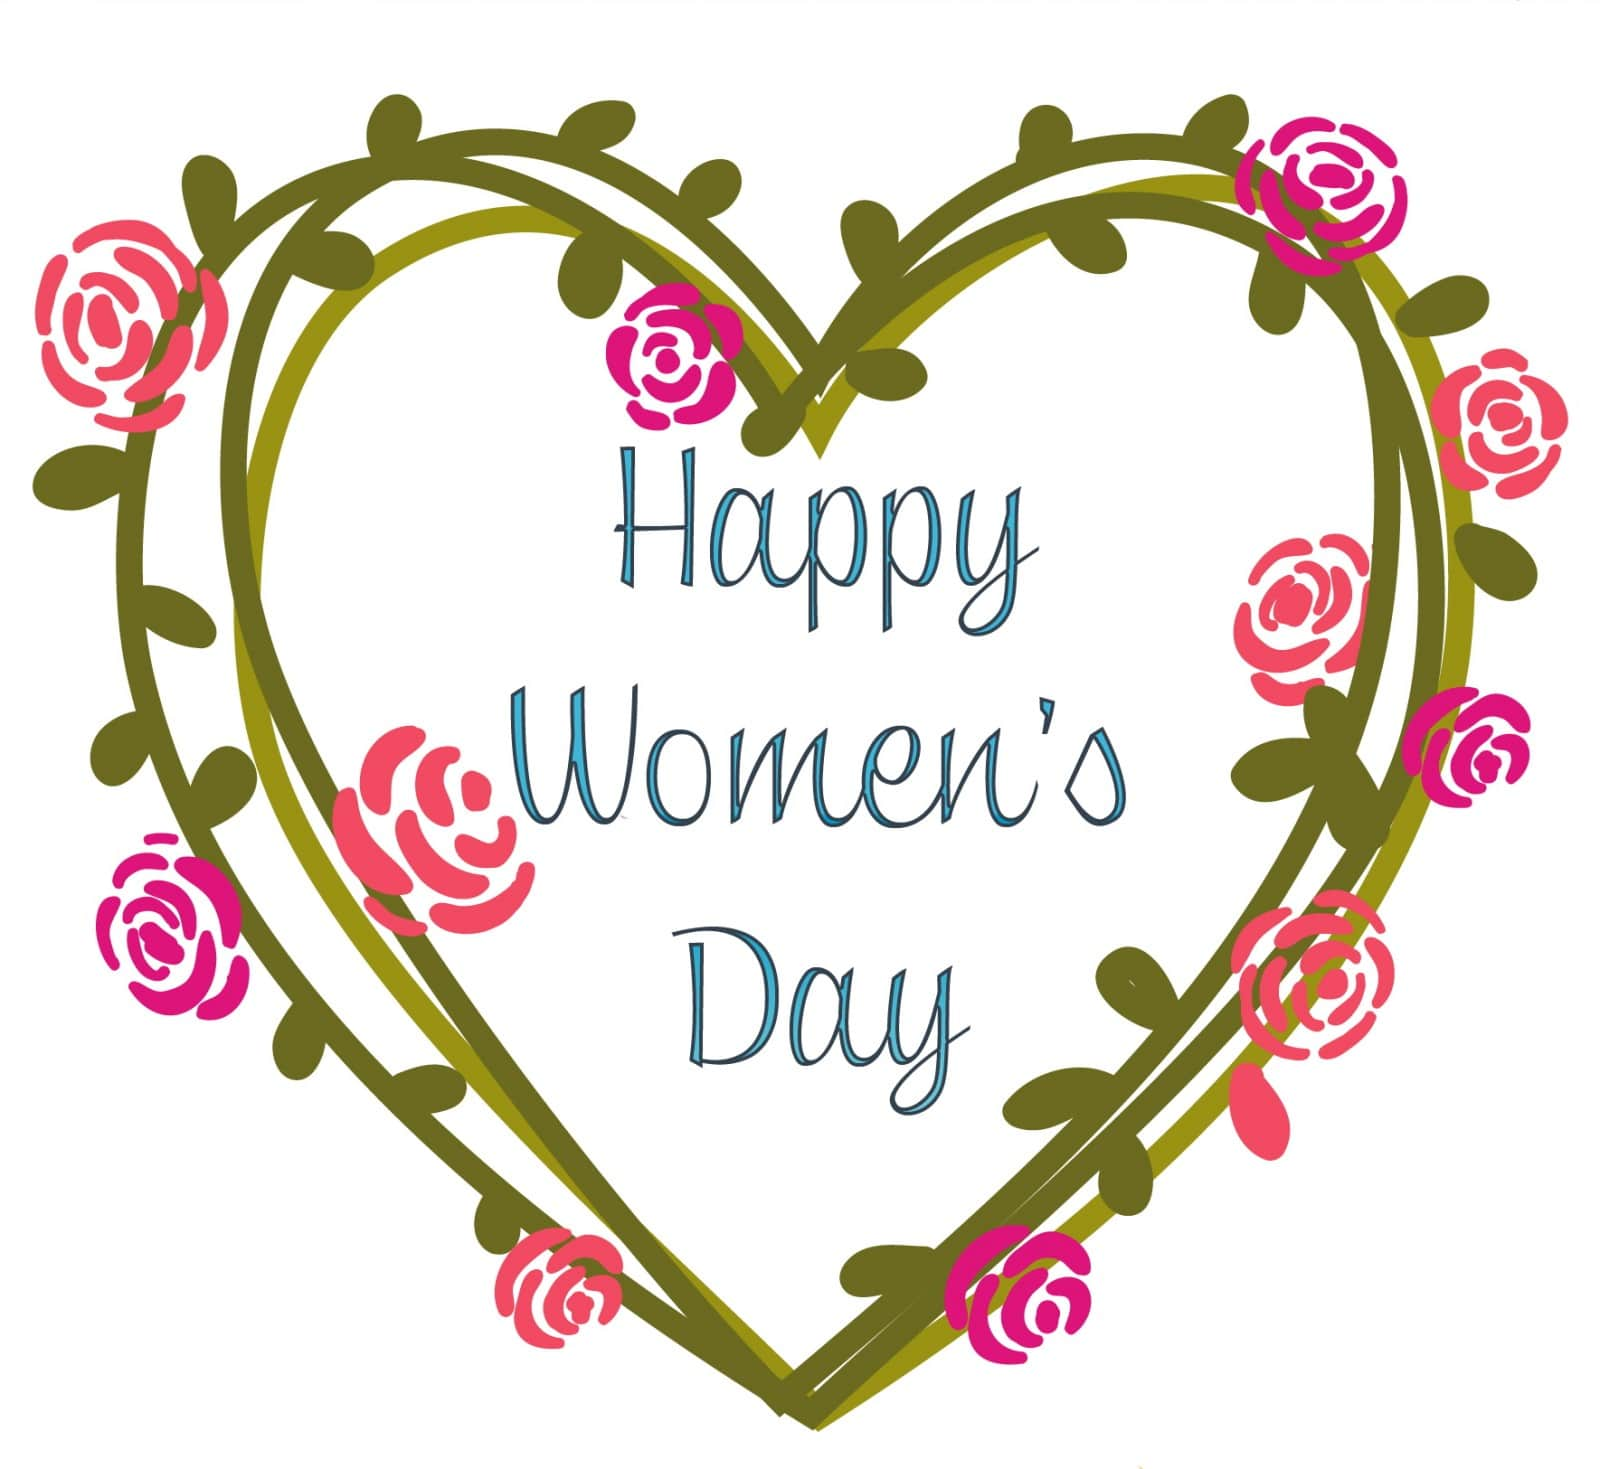 Images and Pics for Happy international Women's Day